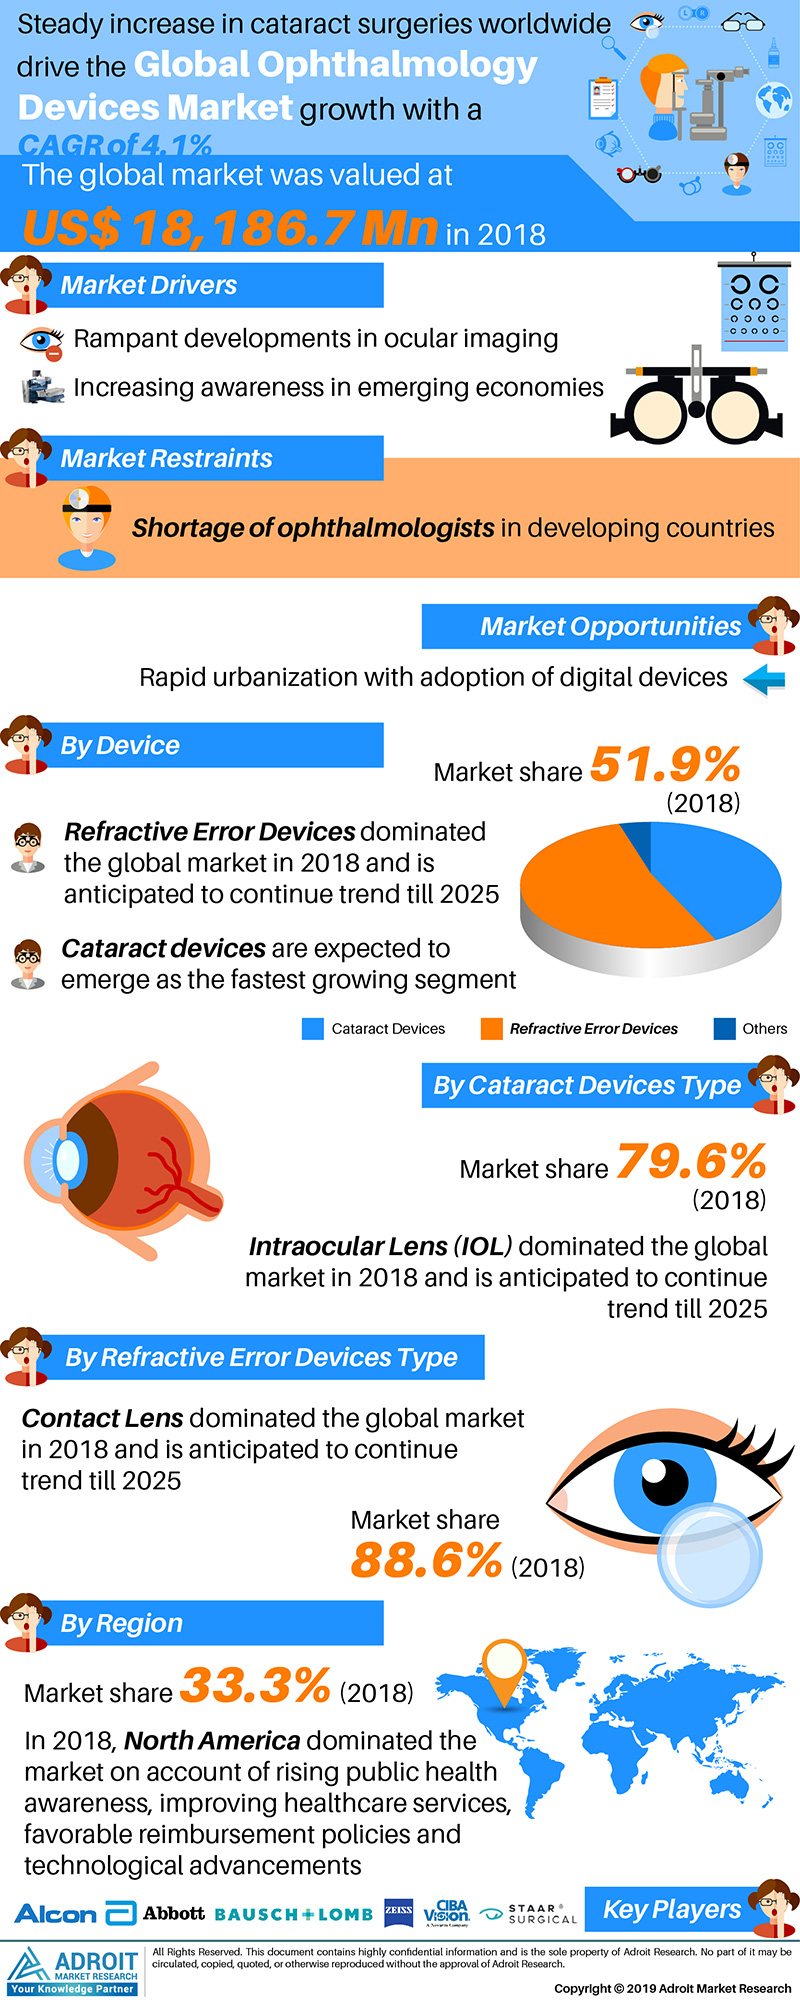 Global Ophthalmology Devices Market Size 2018 By Type, Region and Forecast 2019 to 2025